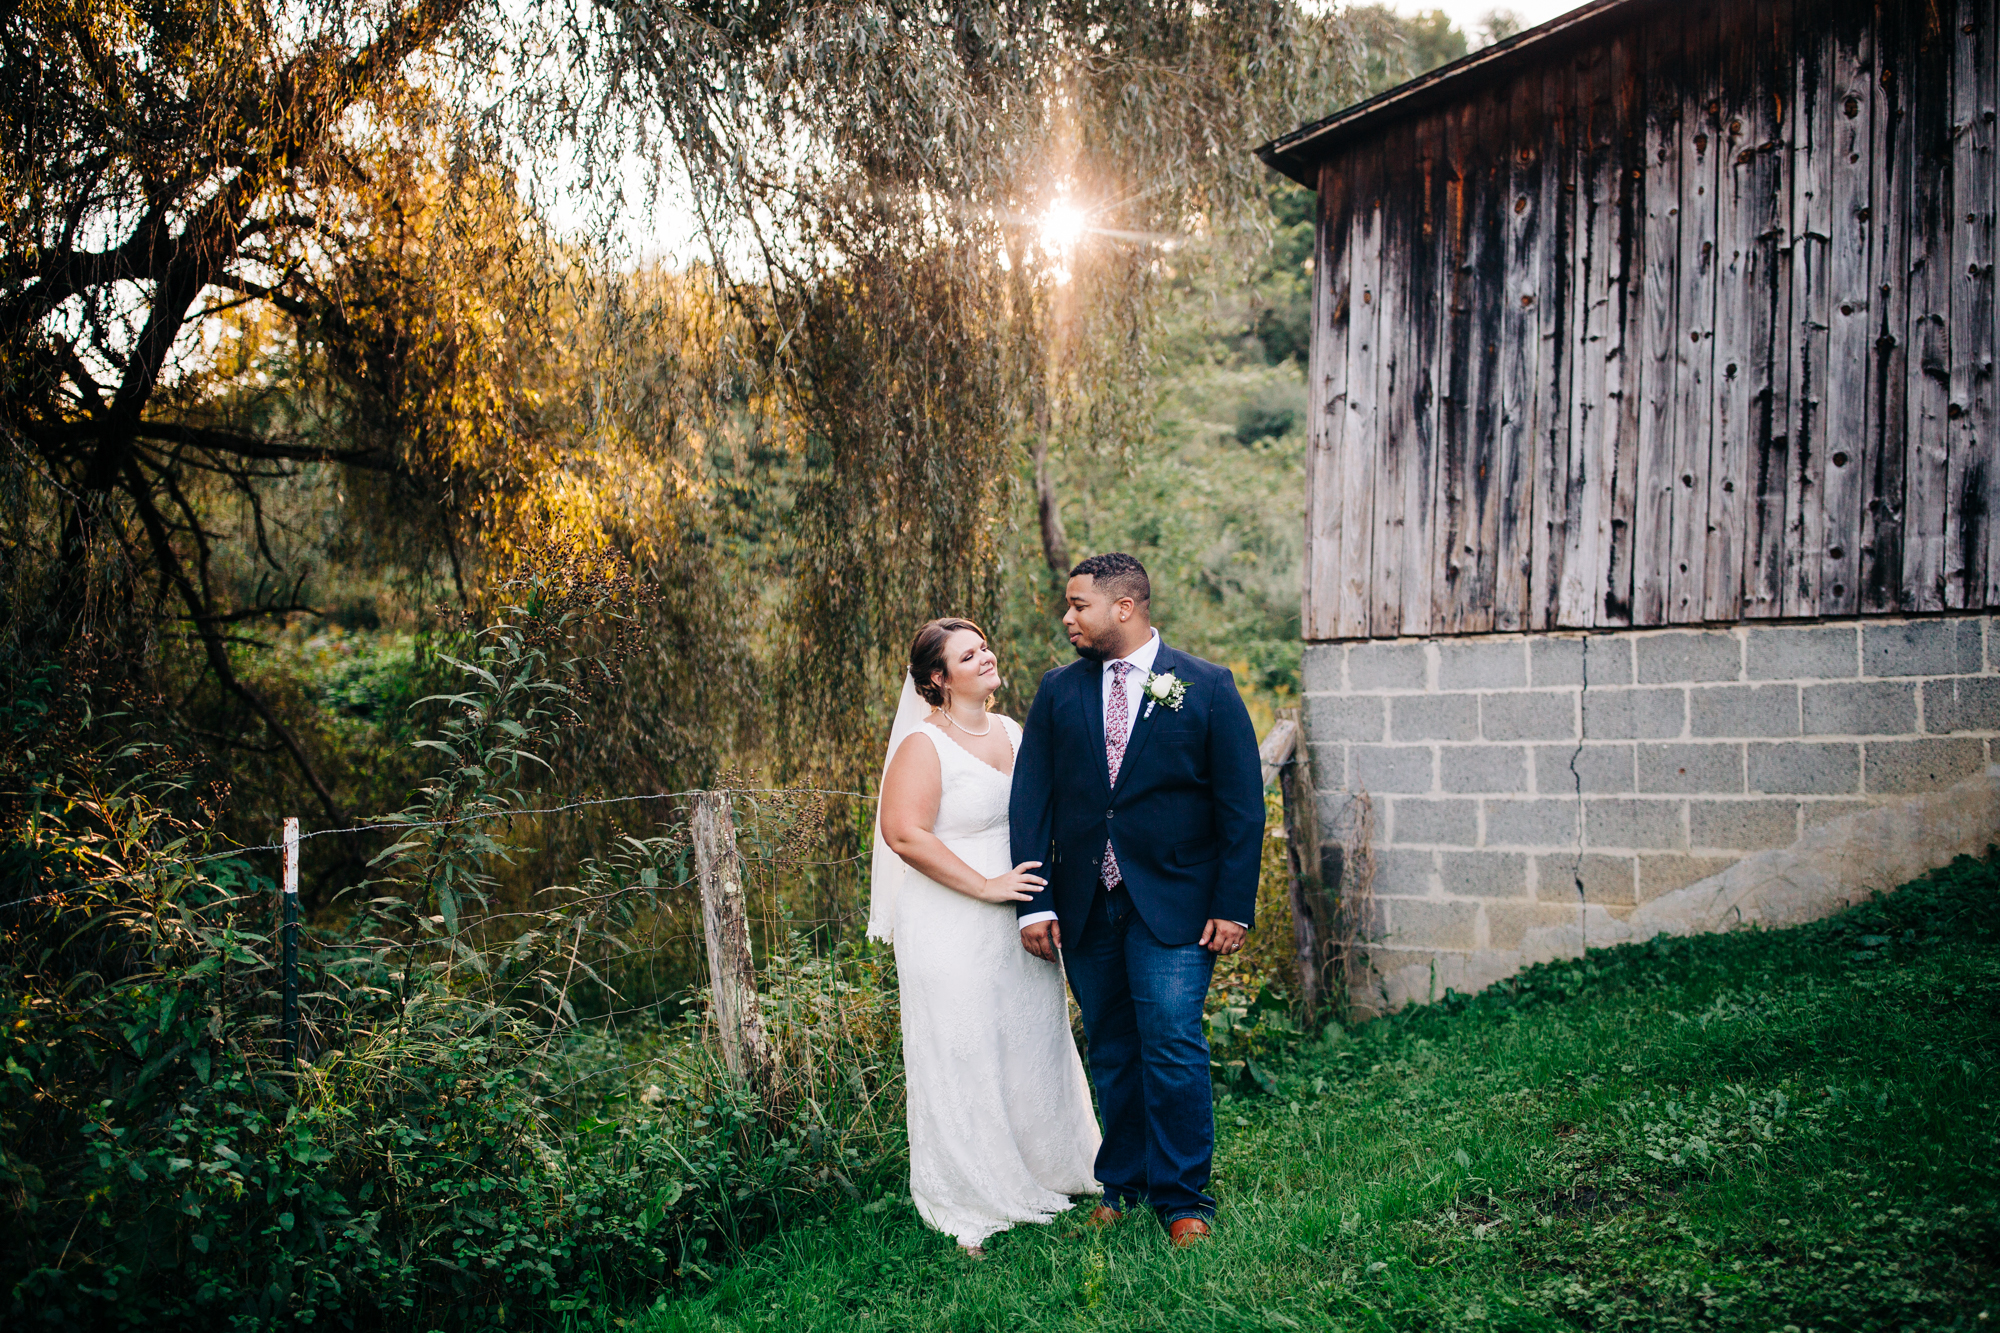 Serra and Chris rented a cabin in Beckley, West Virginia for their September wedding.